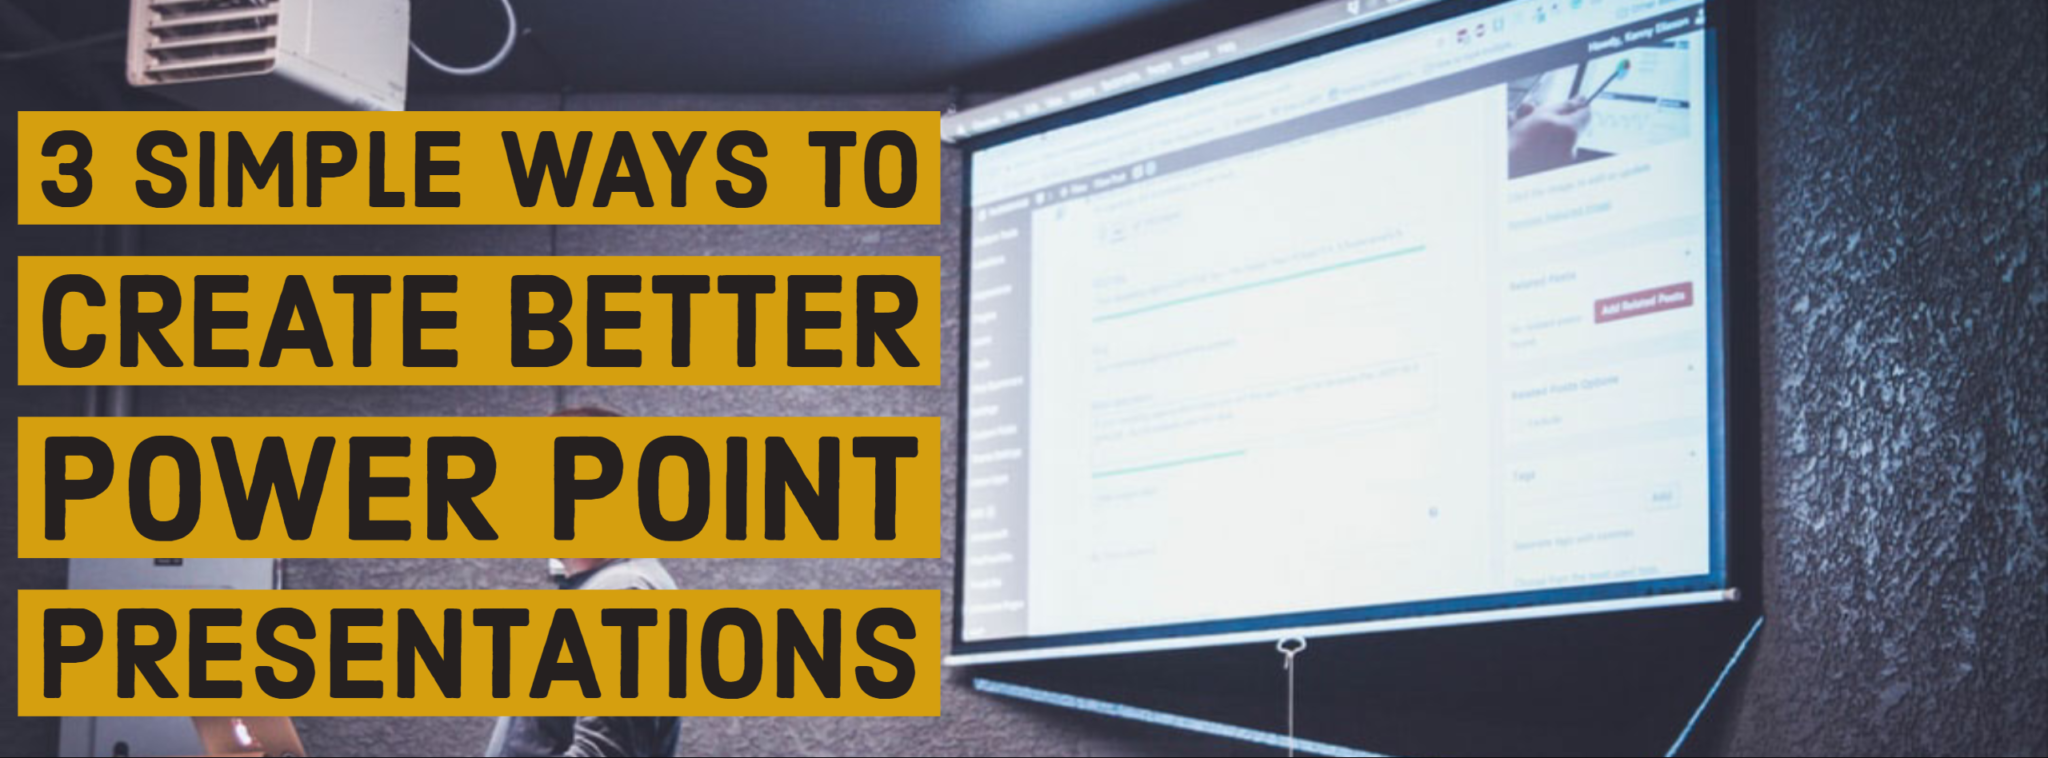 3 Simple Ways to Create Better Power Point Presentations